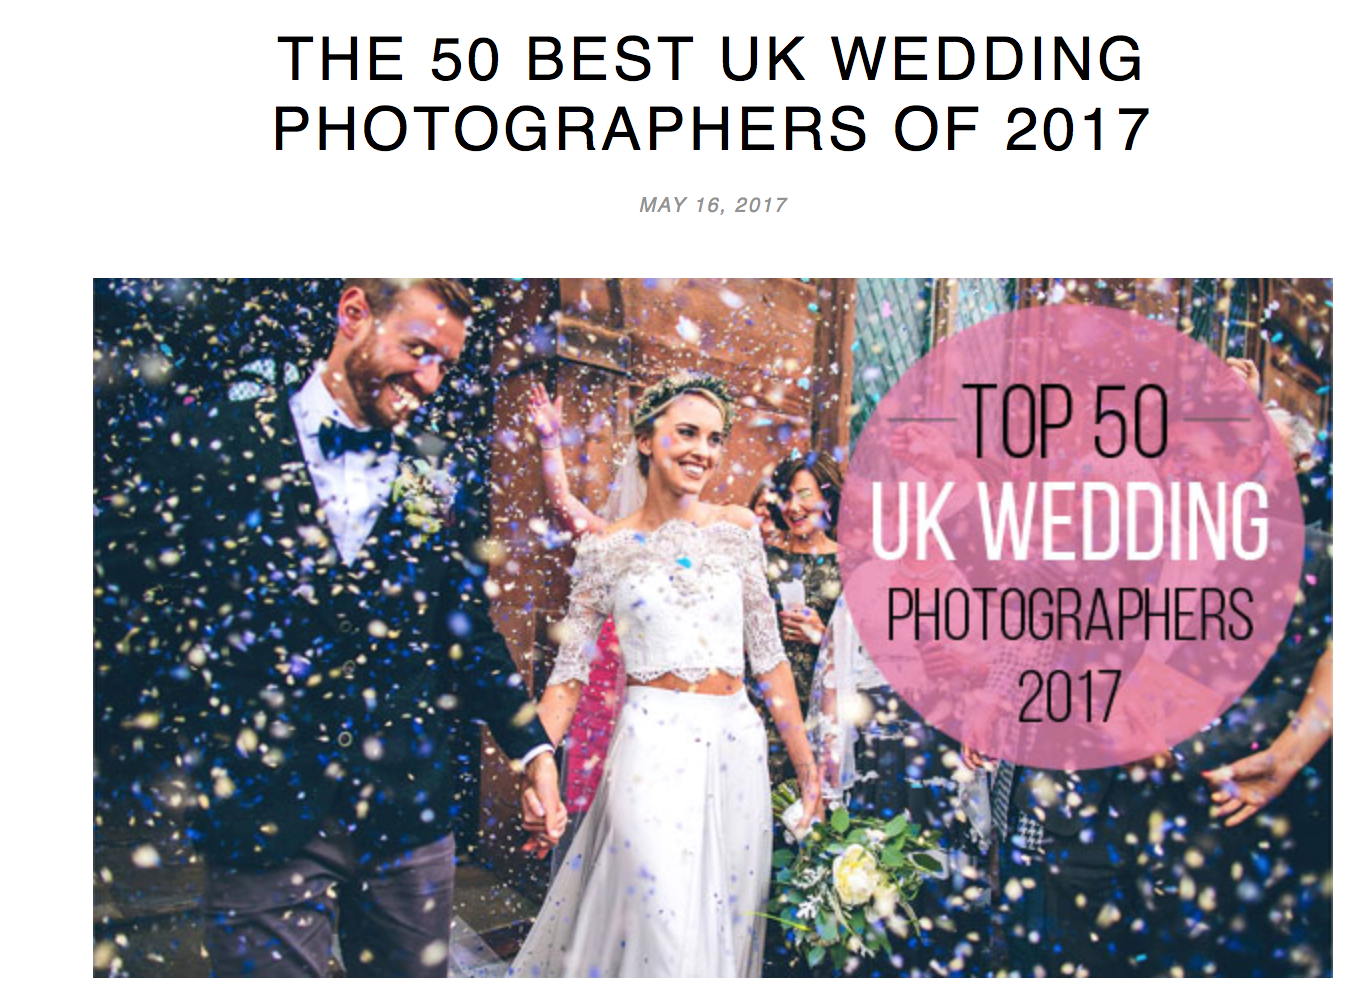 Screen Shot 2017 06 01 at 19.00.06 - Amongst the top 50 UK Wedding Photographers